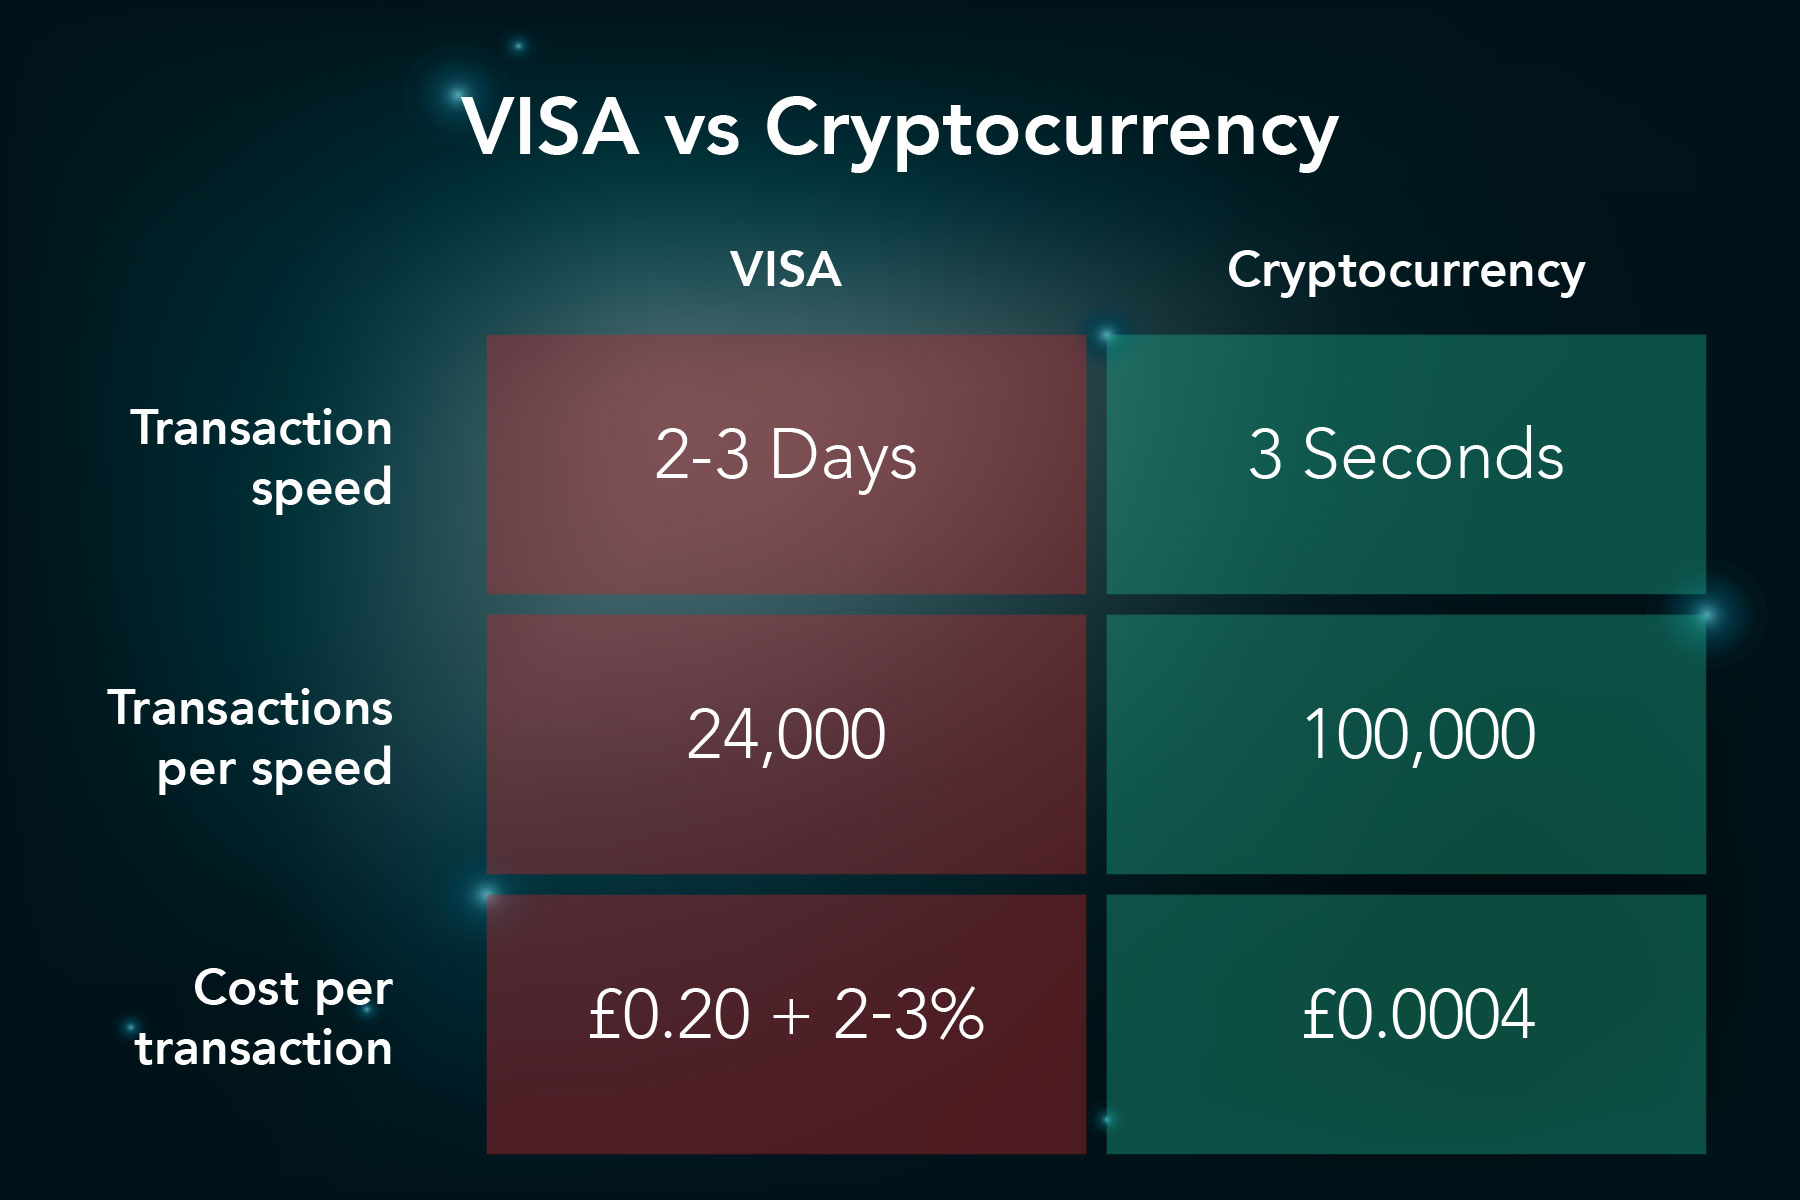 visa vs cryptocurrency